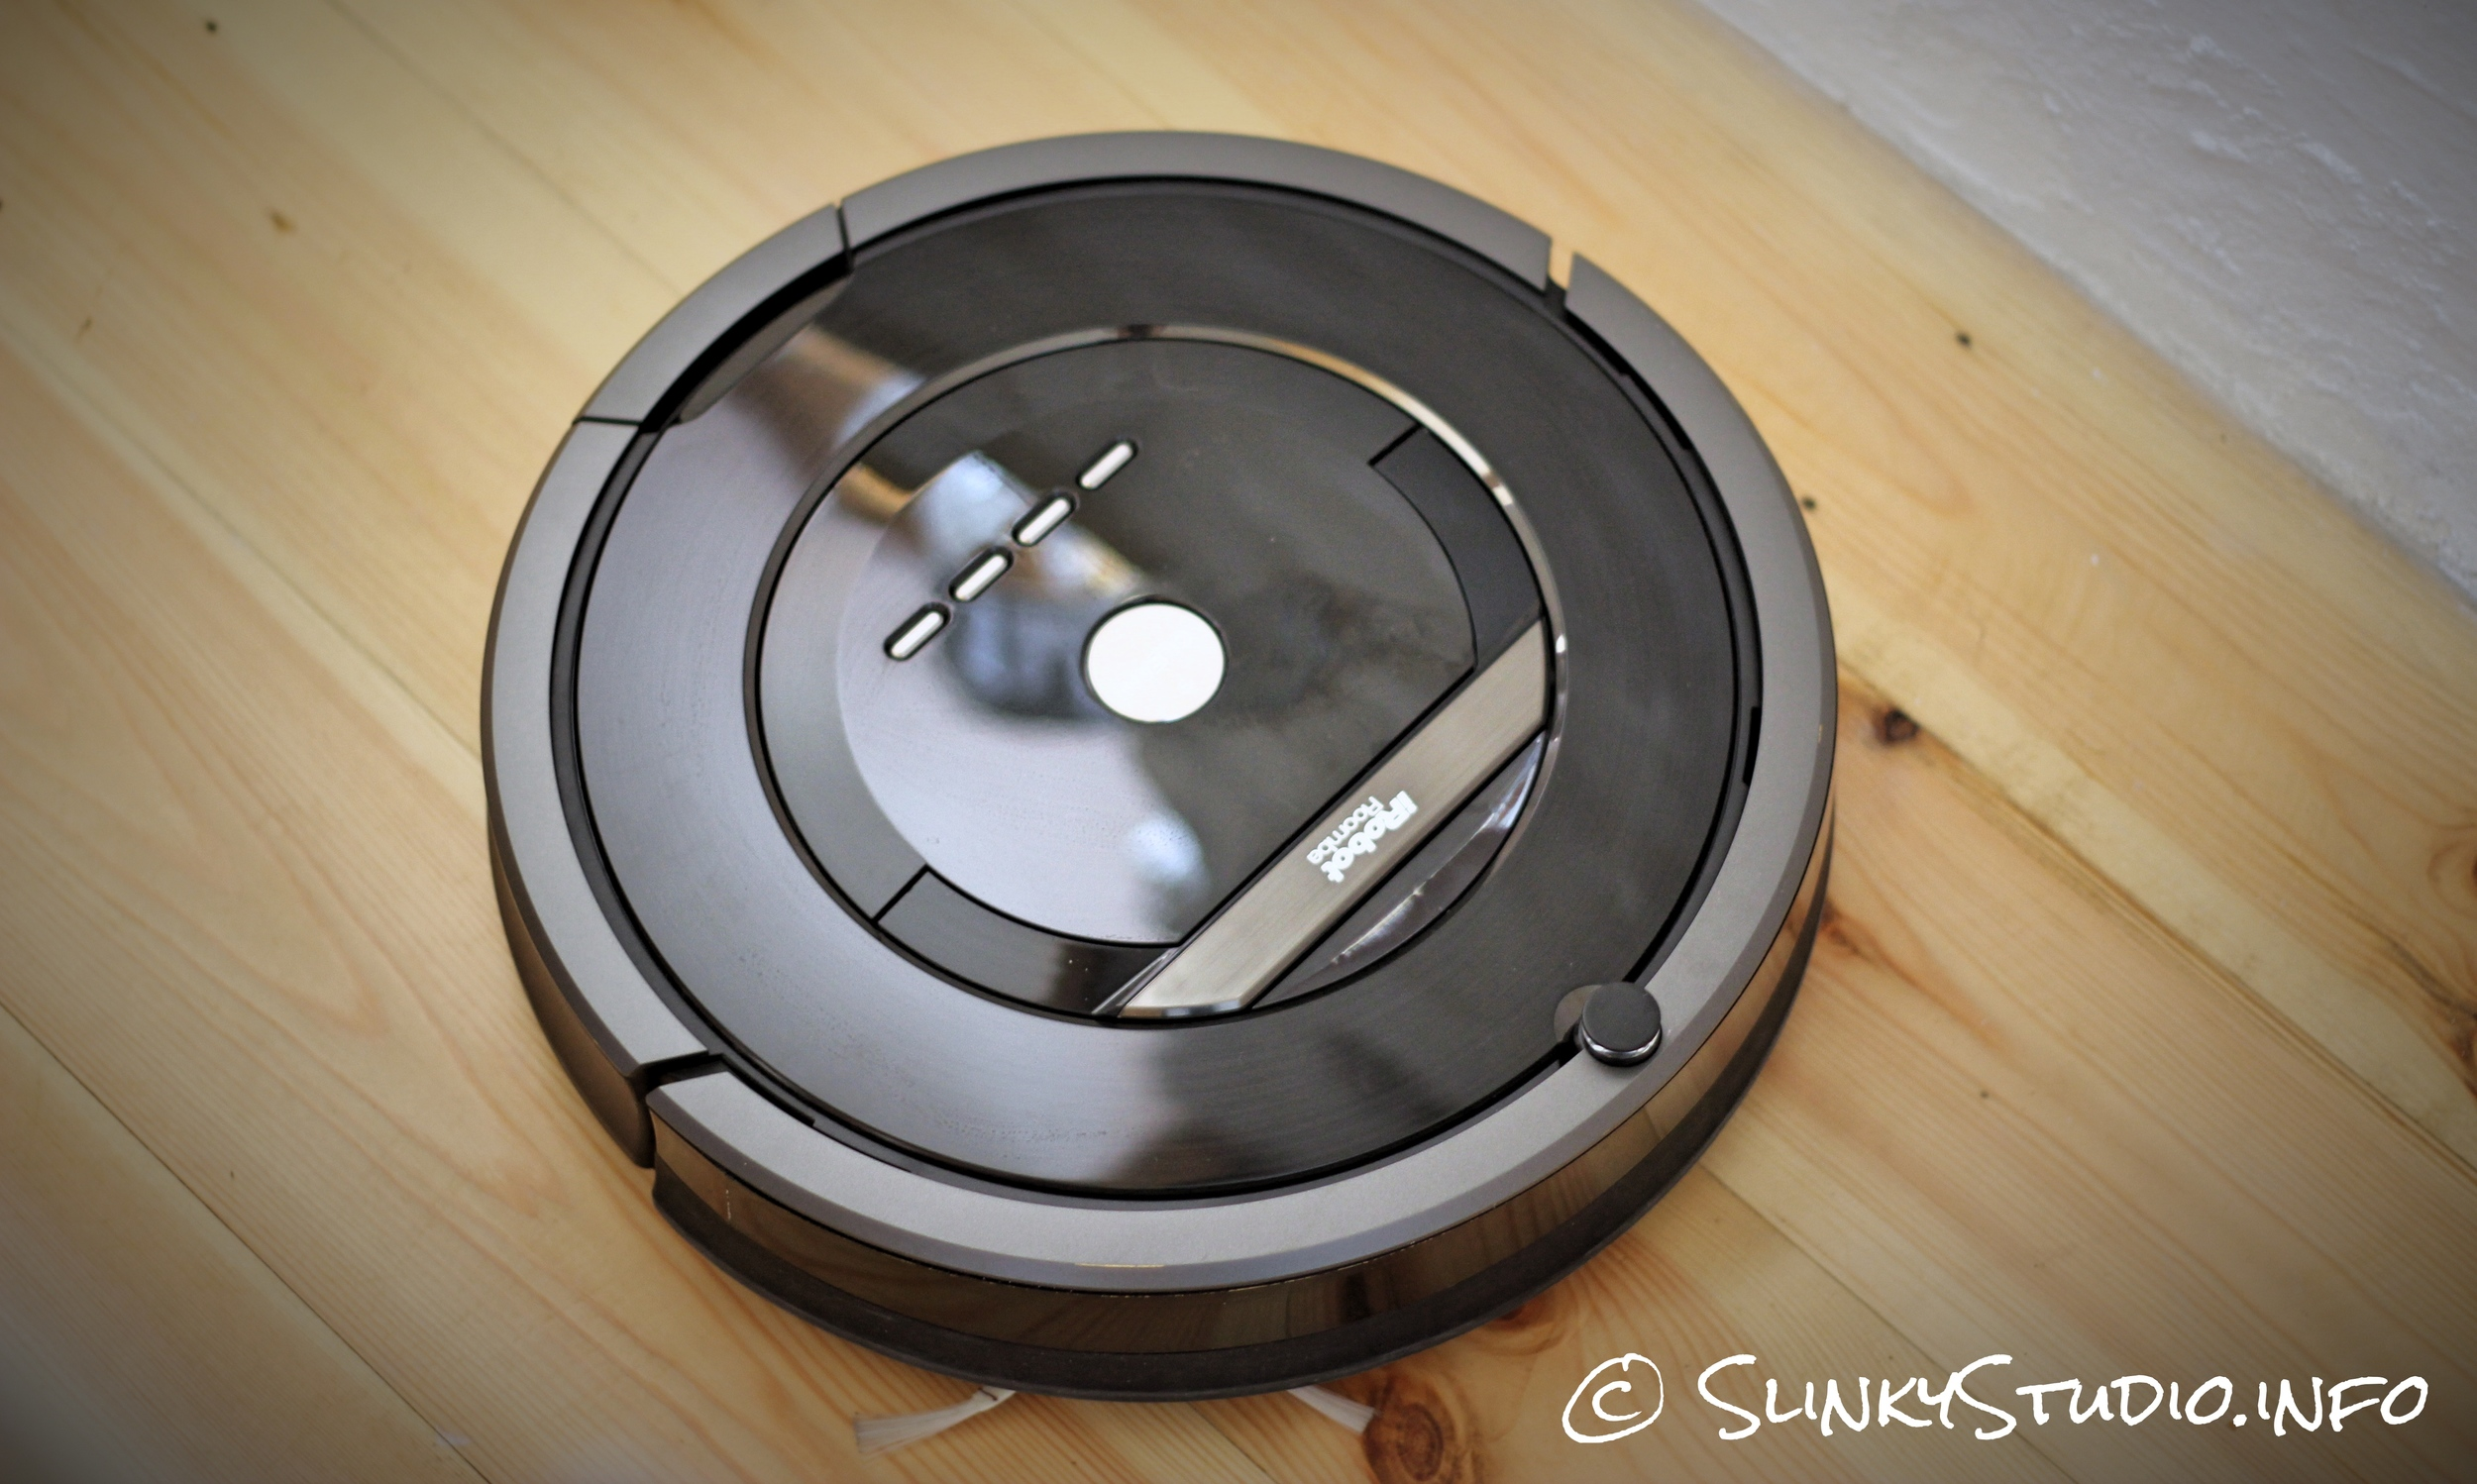 iRobot Roomba 880 Top View.jpg